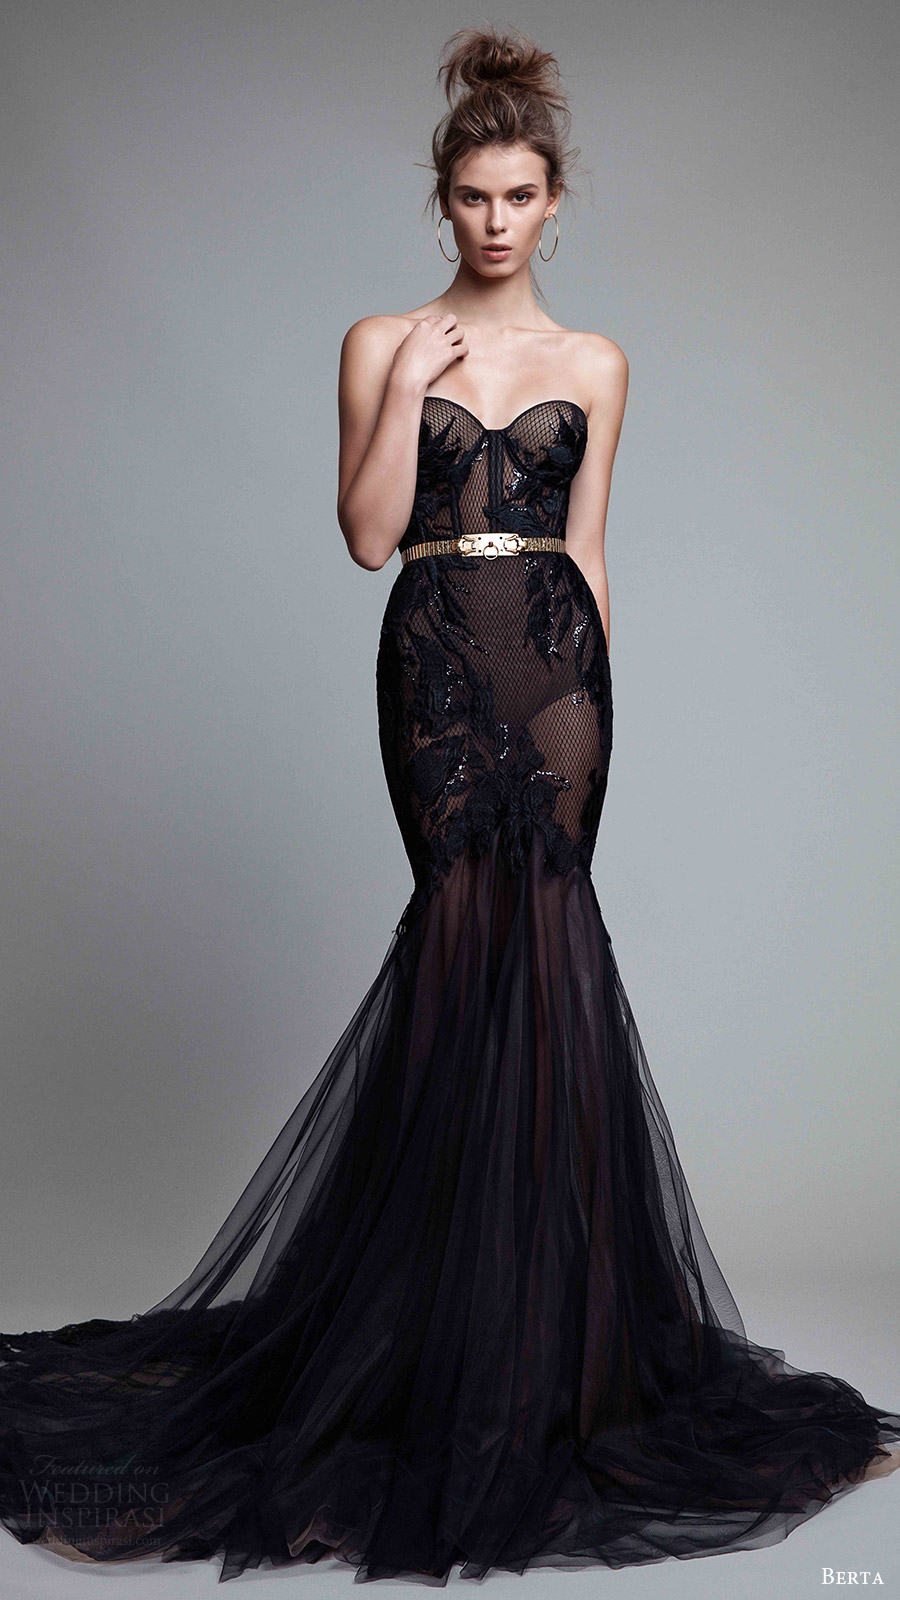 berta rtw fall 2017 (17 23) strapless sweetheart mermaid embellished black evening dress mv